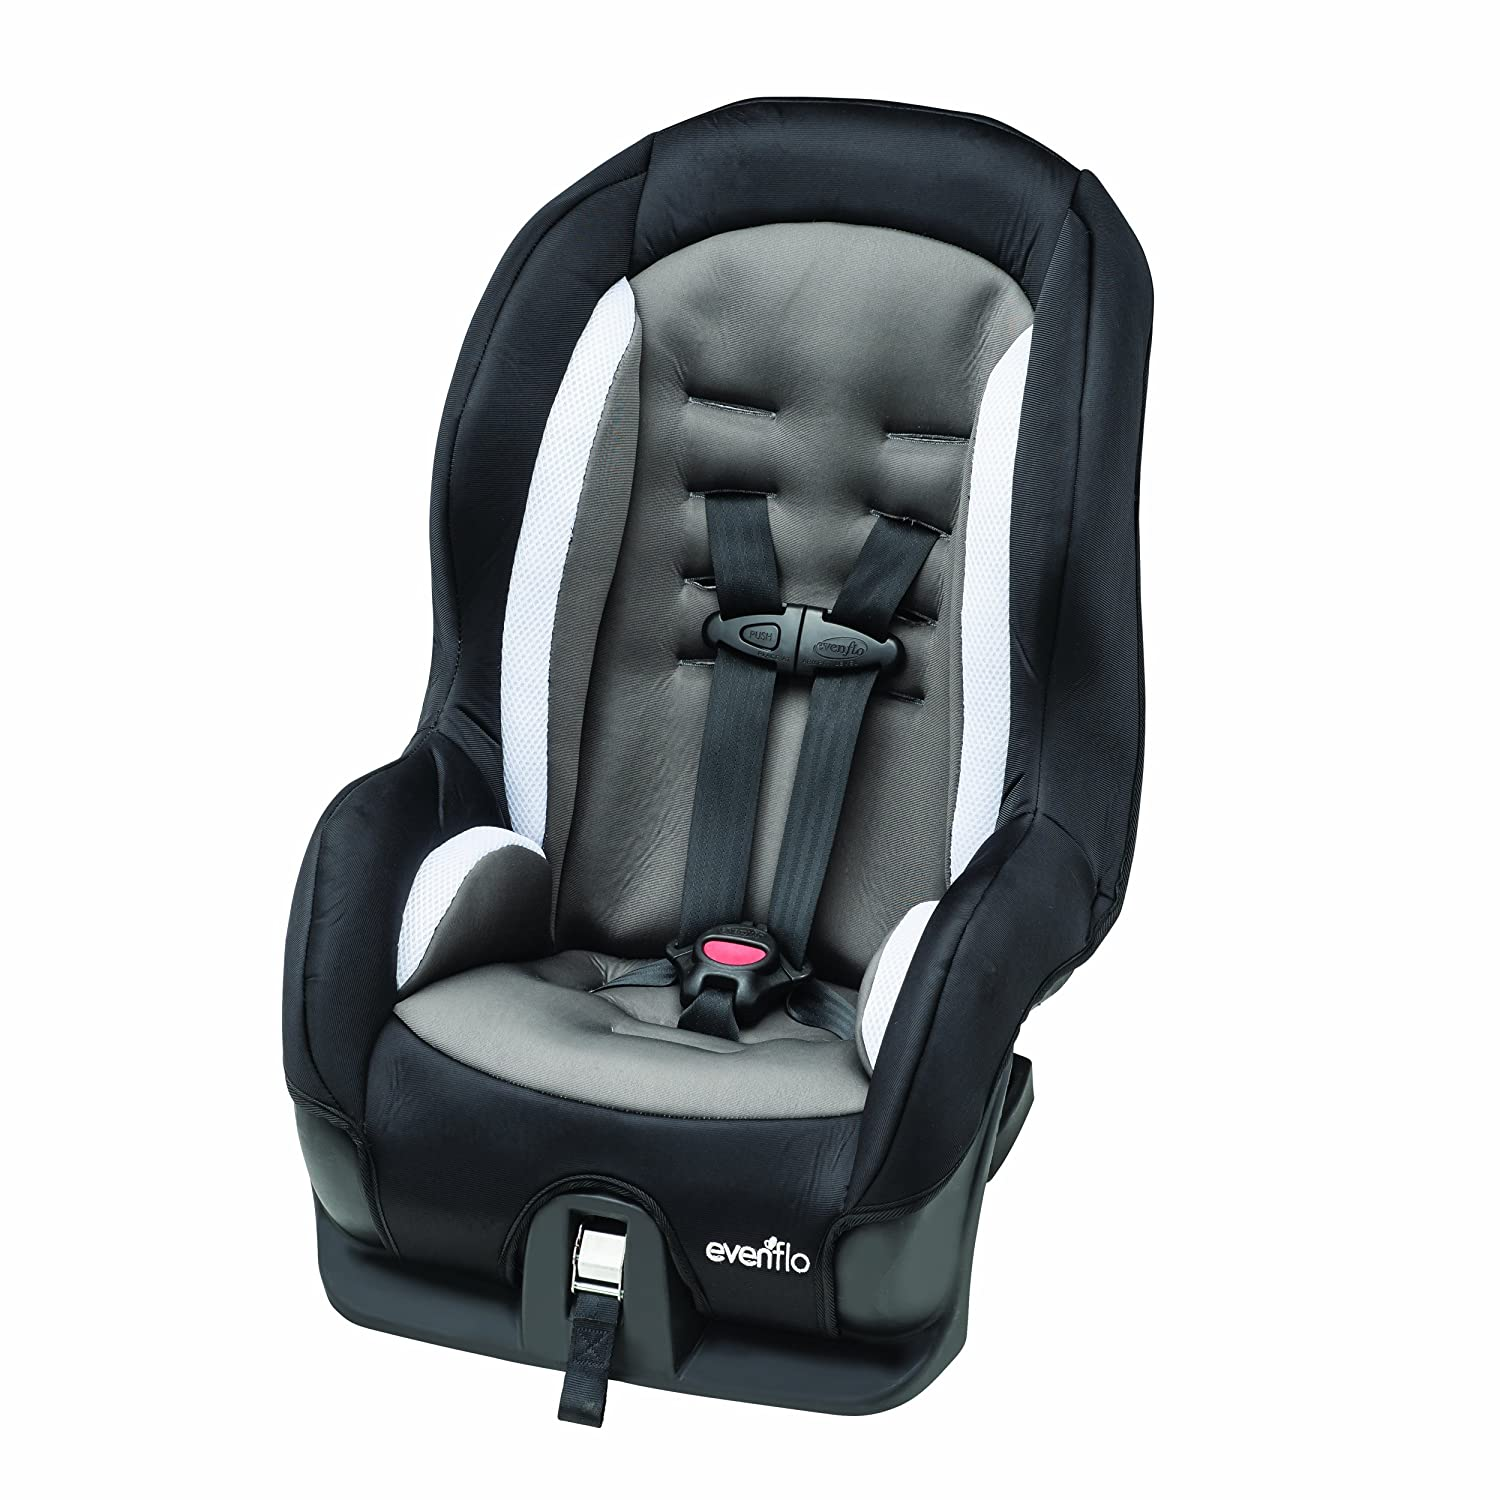 Lightweight Car Seat >> Top 5 Lightweight Car Seats In 2018 Ideal For Travels And Light To